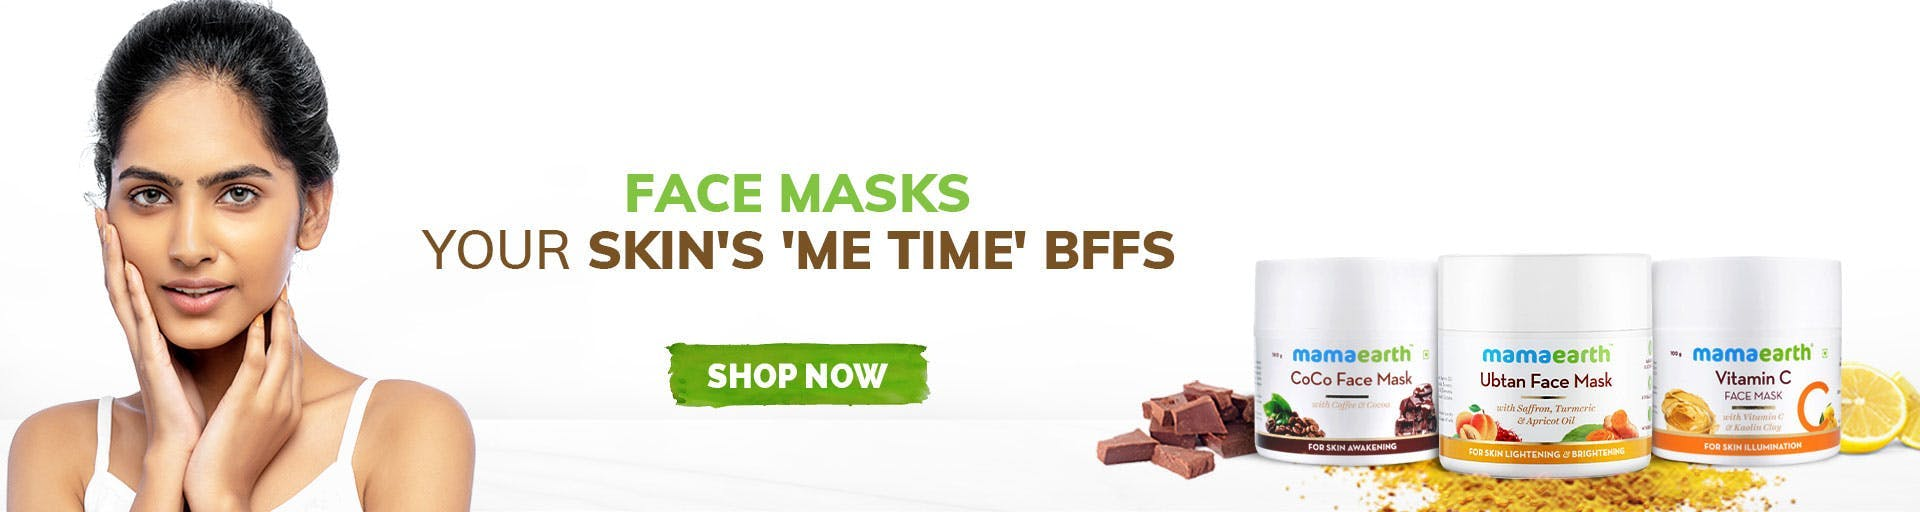 mamaearth.in - Face Masks starting at just ₹149